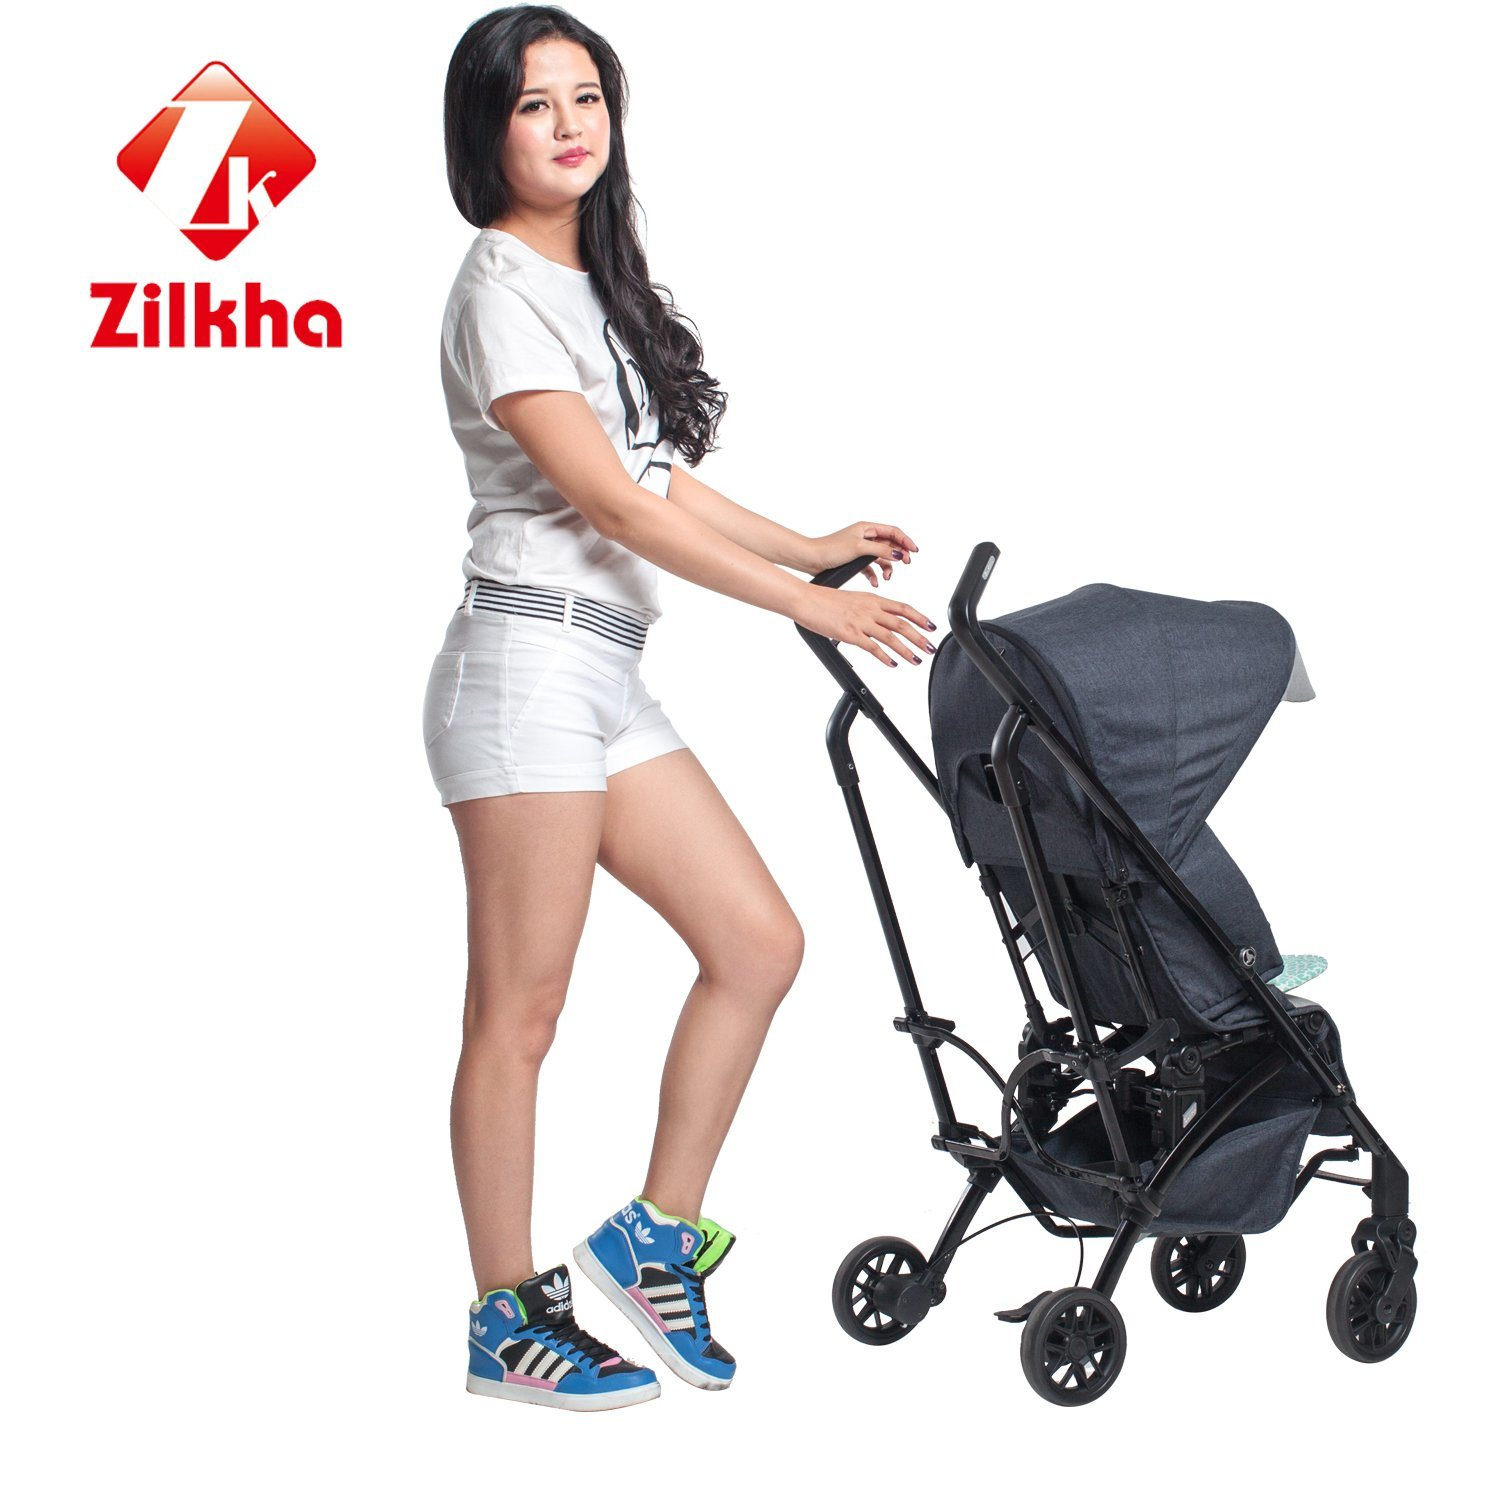 Customized Baby Stroller Is of Good Quality